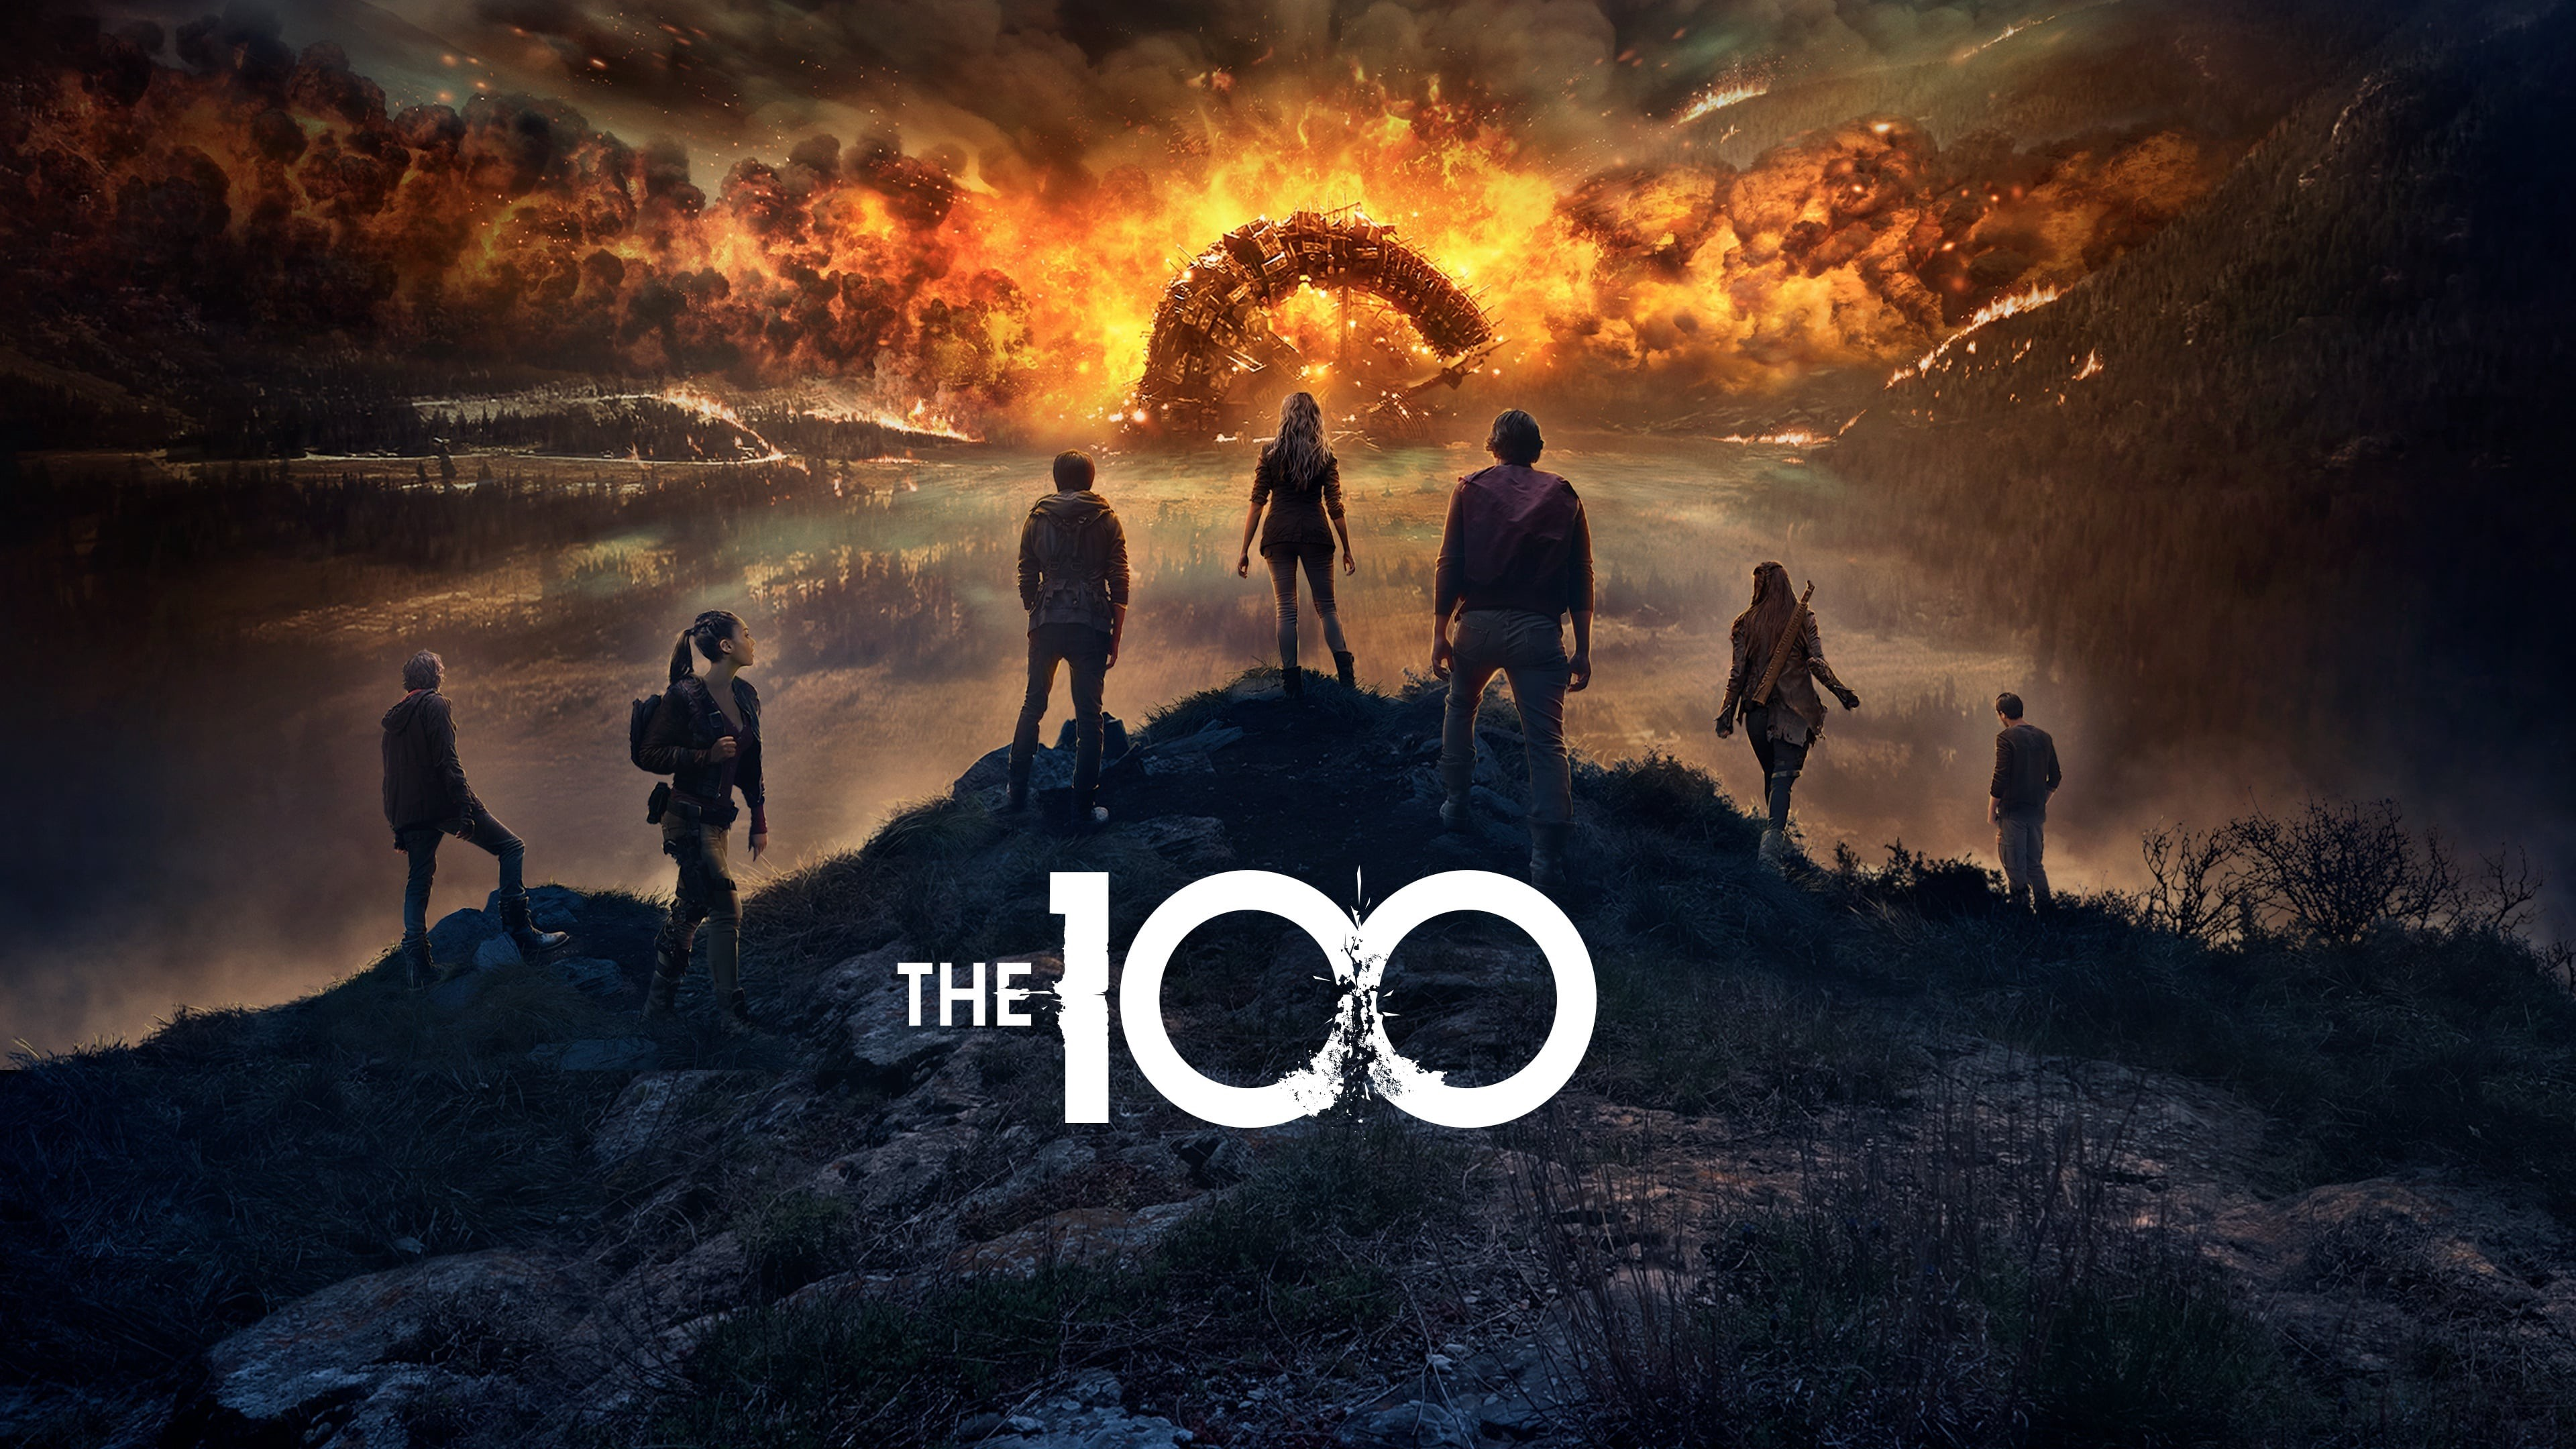 The 100 Season 7, HD Tv Shows, 4k Wallpapers, Images ...